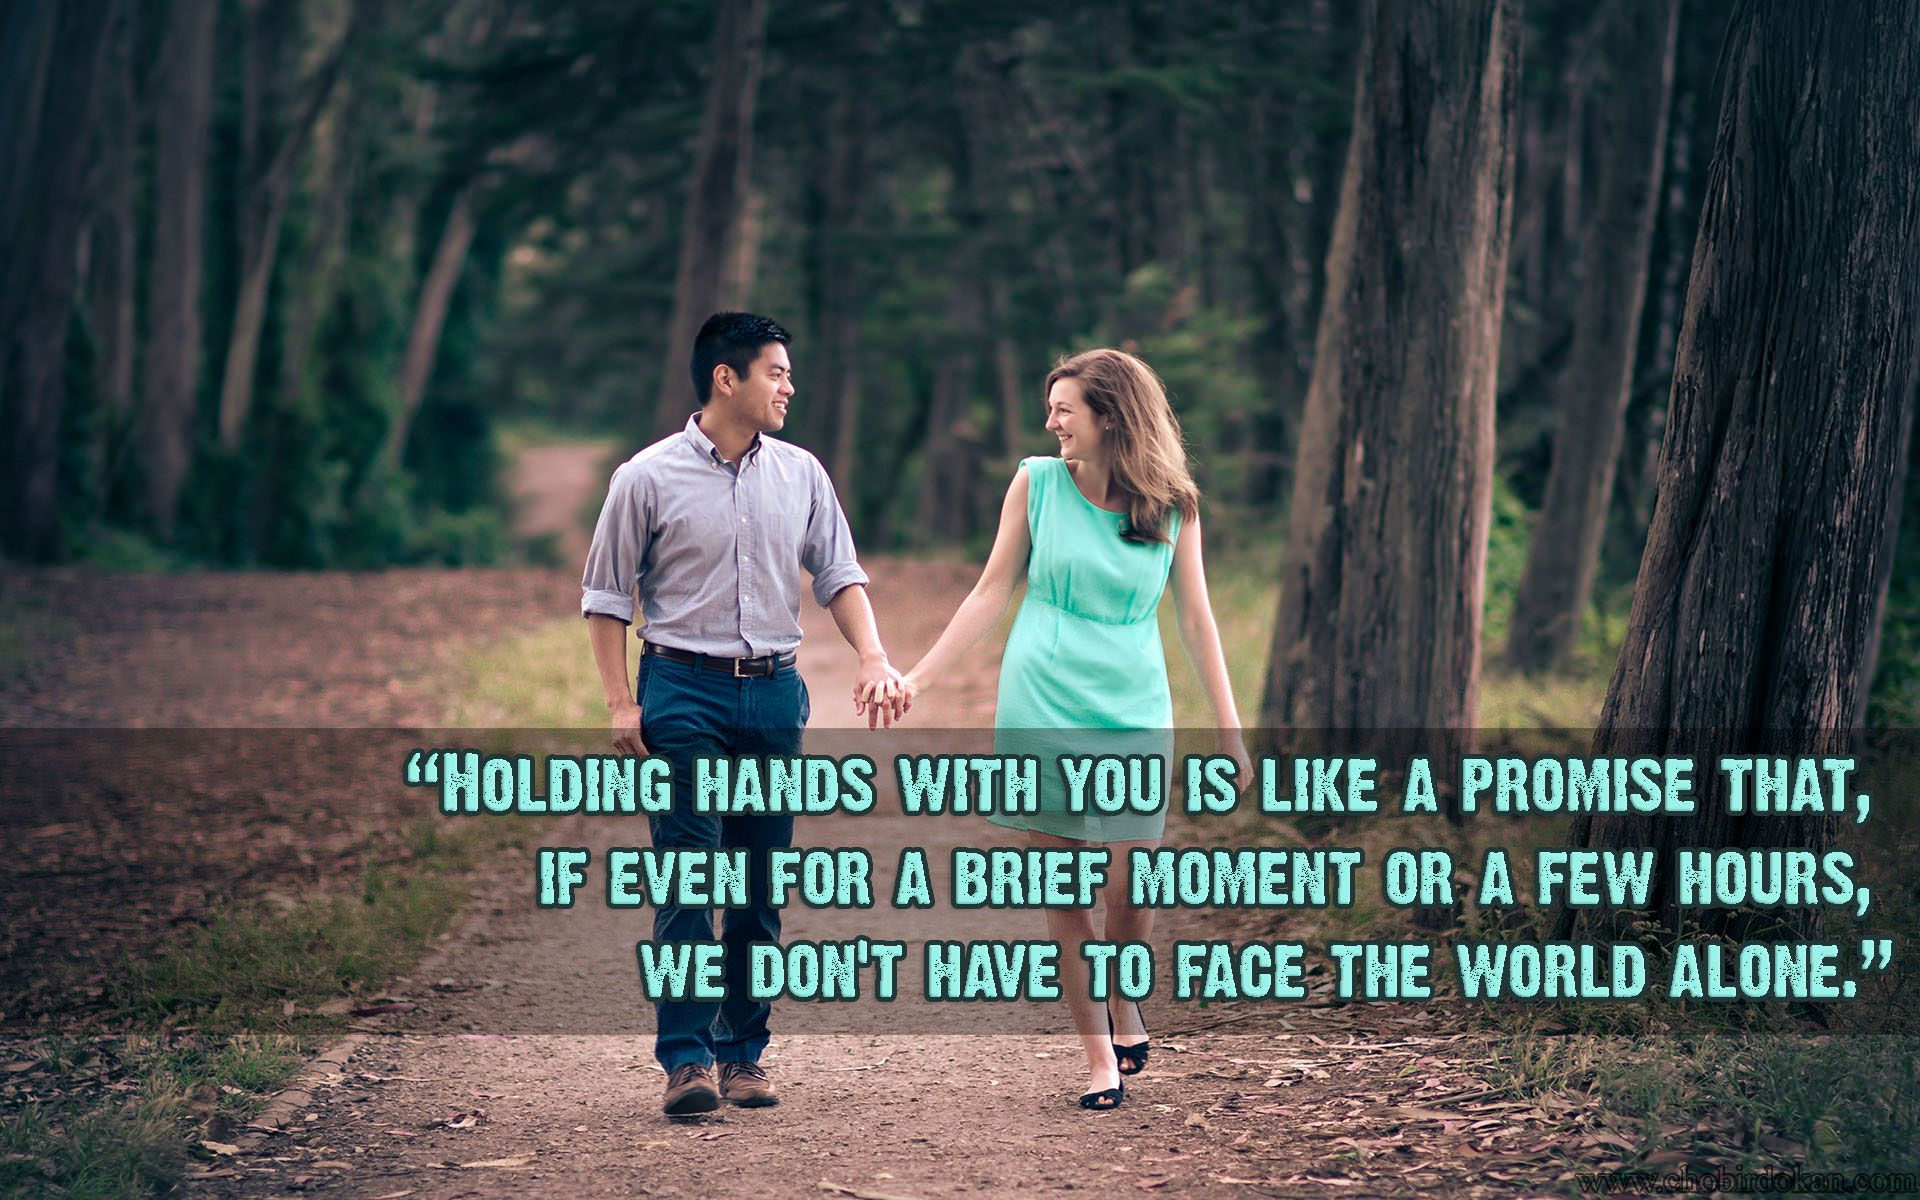 Cute Couple Pictures With Quotes Couples Quotes Love Holding Hands Quotes Hand Quotes